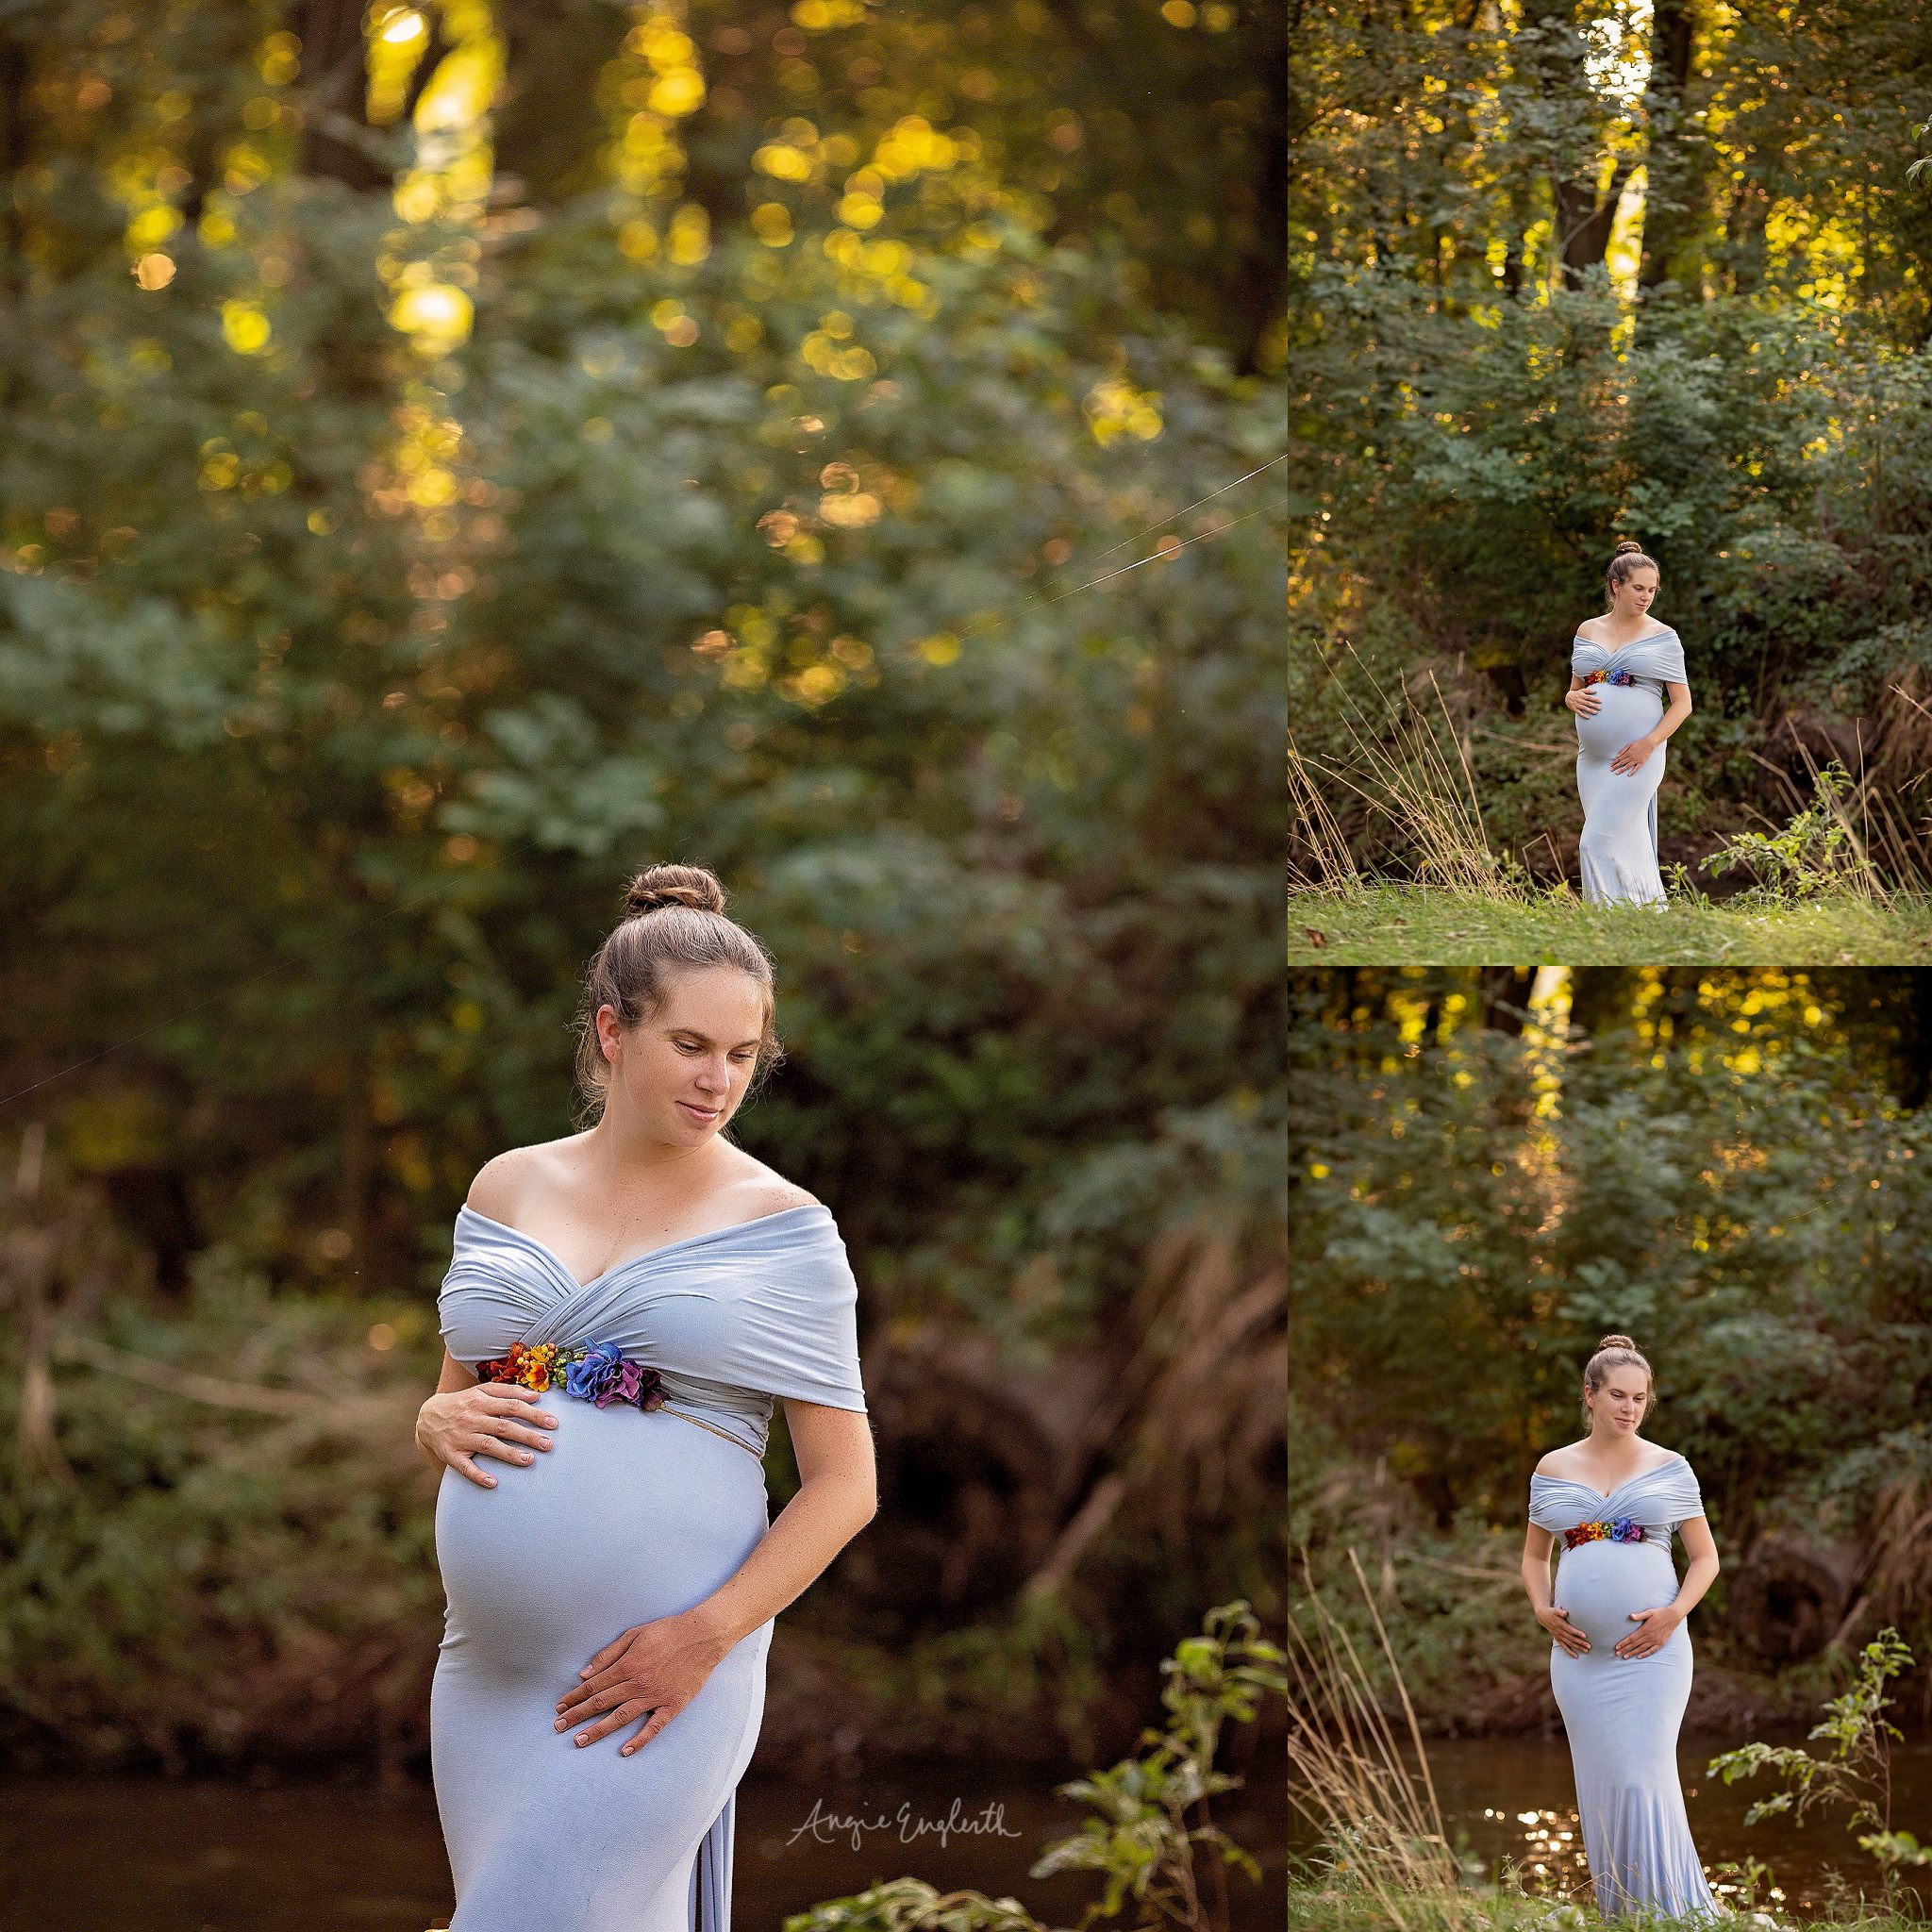 lancaster_maternity_photographer_angie_englerth_central_pa_b052.jpg